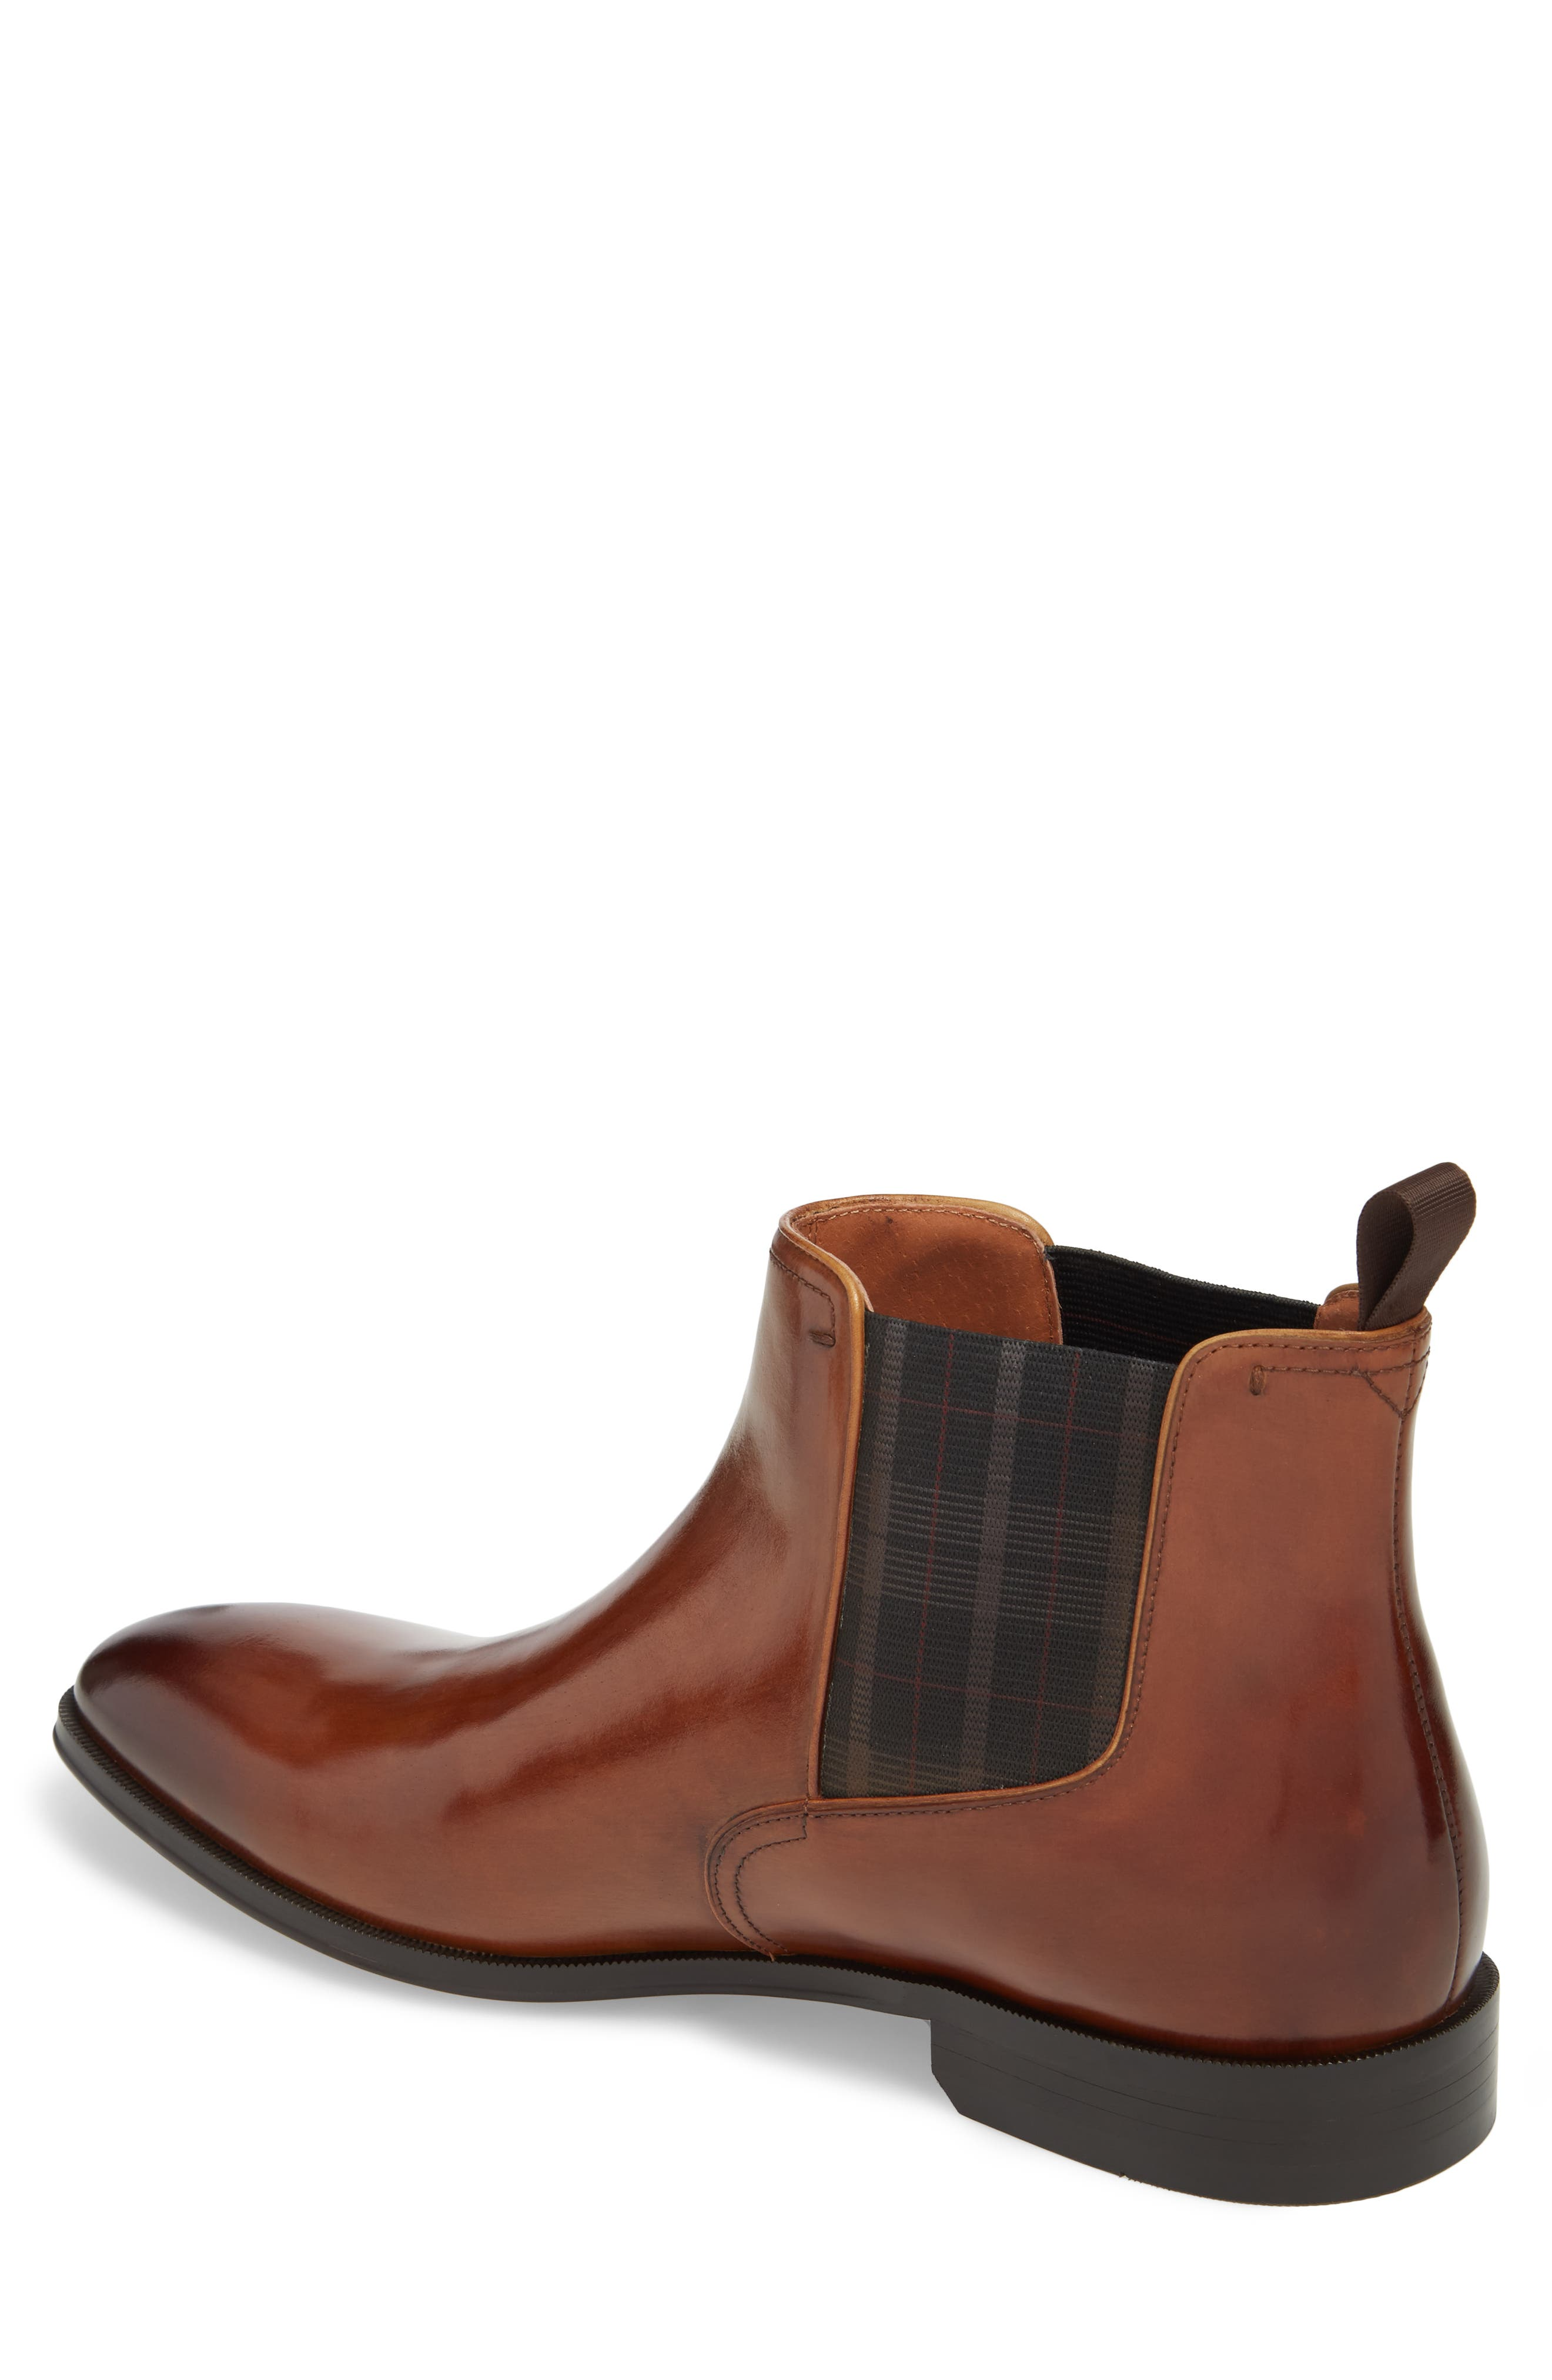 Belfast Chelsea Boot,                             Alternate thumbnail 2, color,                             COGNAC LEATHER